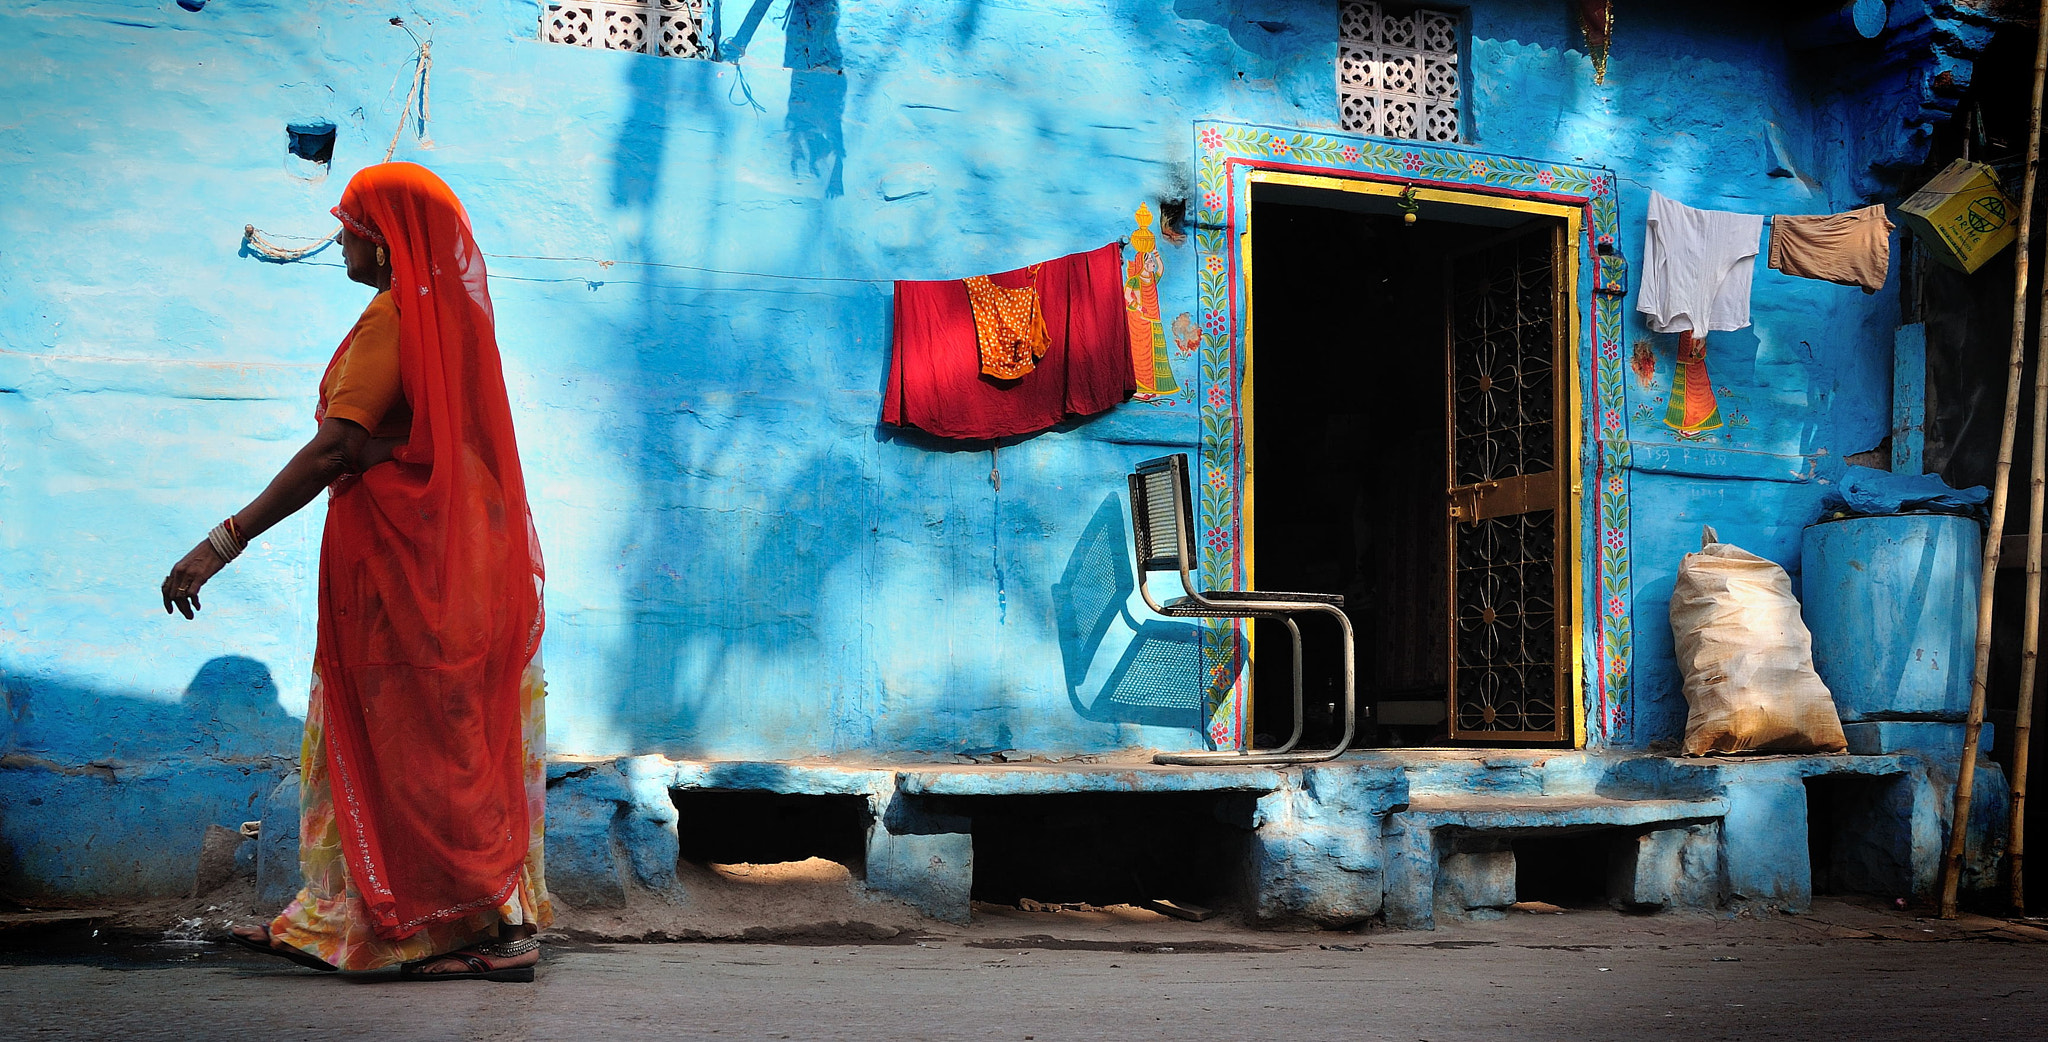 Photograph Passing by, Jodhpur by Ulrich Lambert on 500px